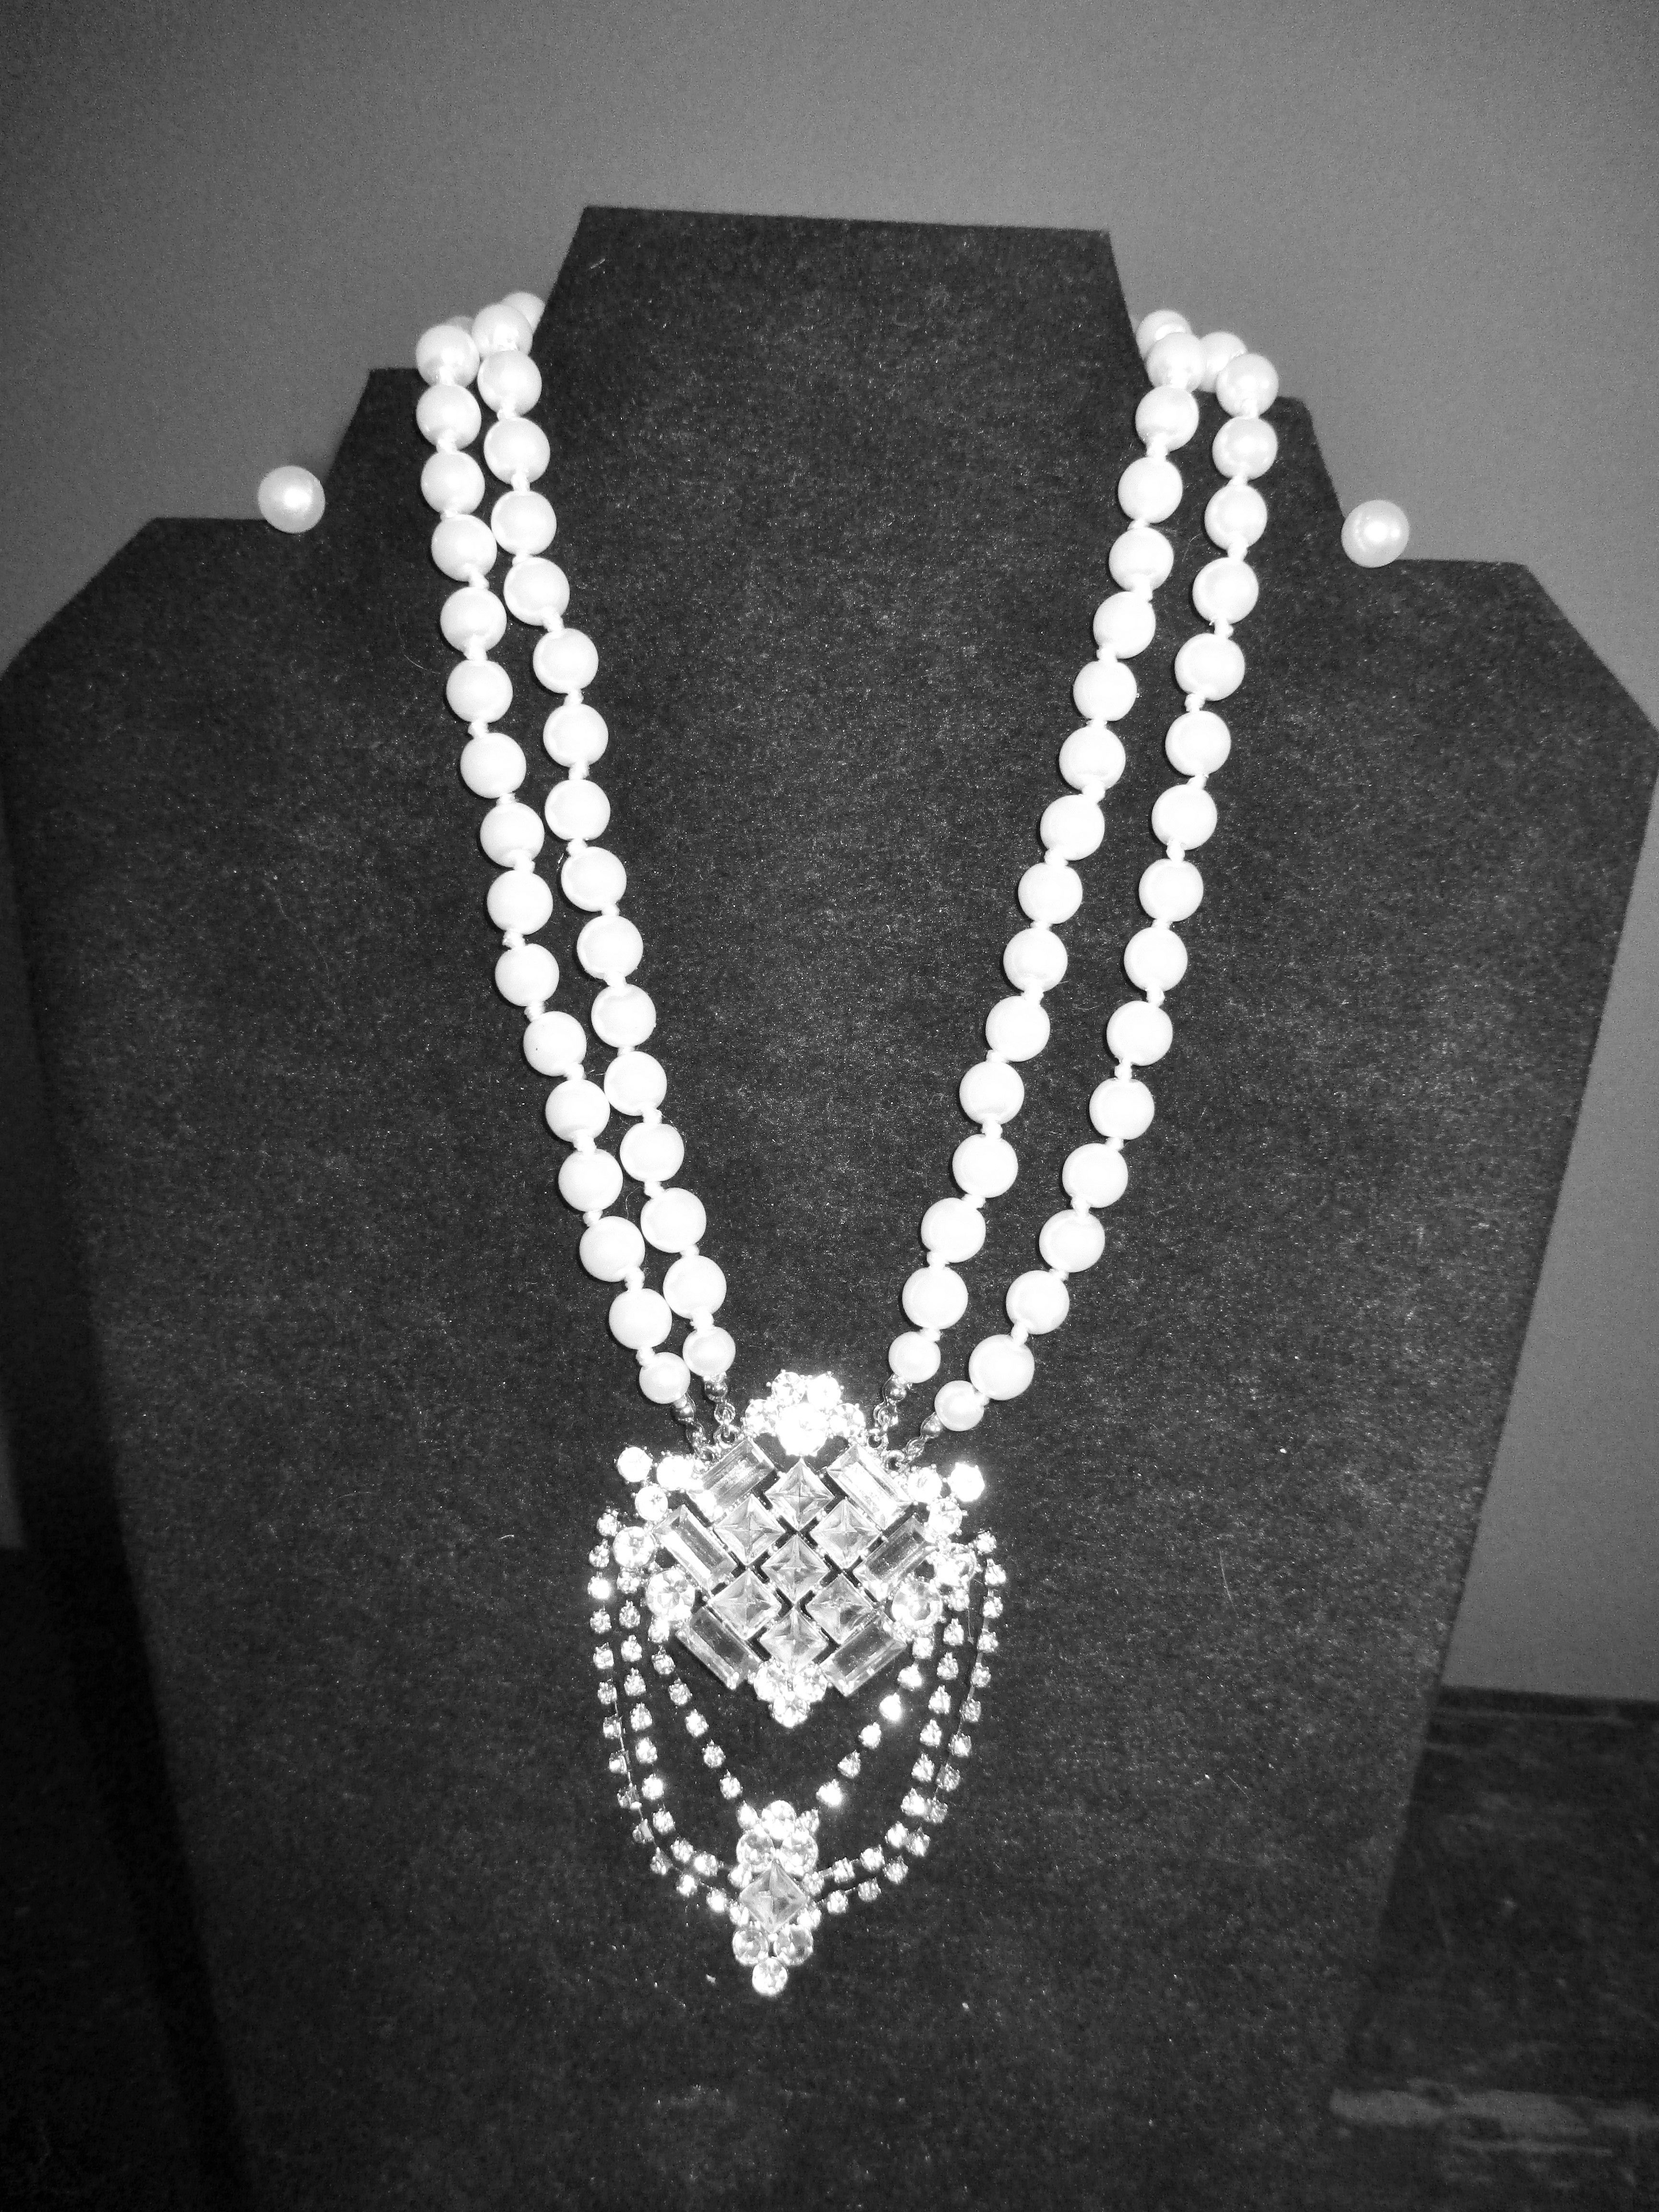 Stunning Pearl and Crystal Pendant Necklace with Matching Earrings